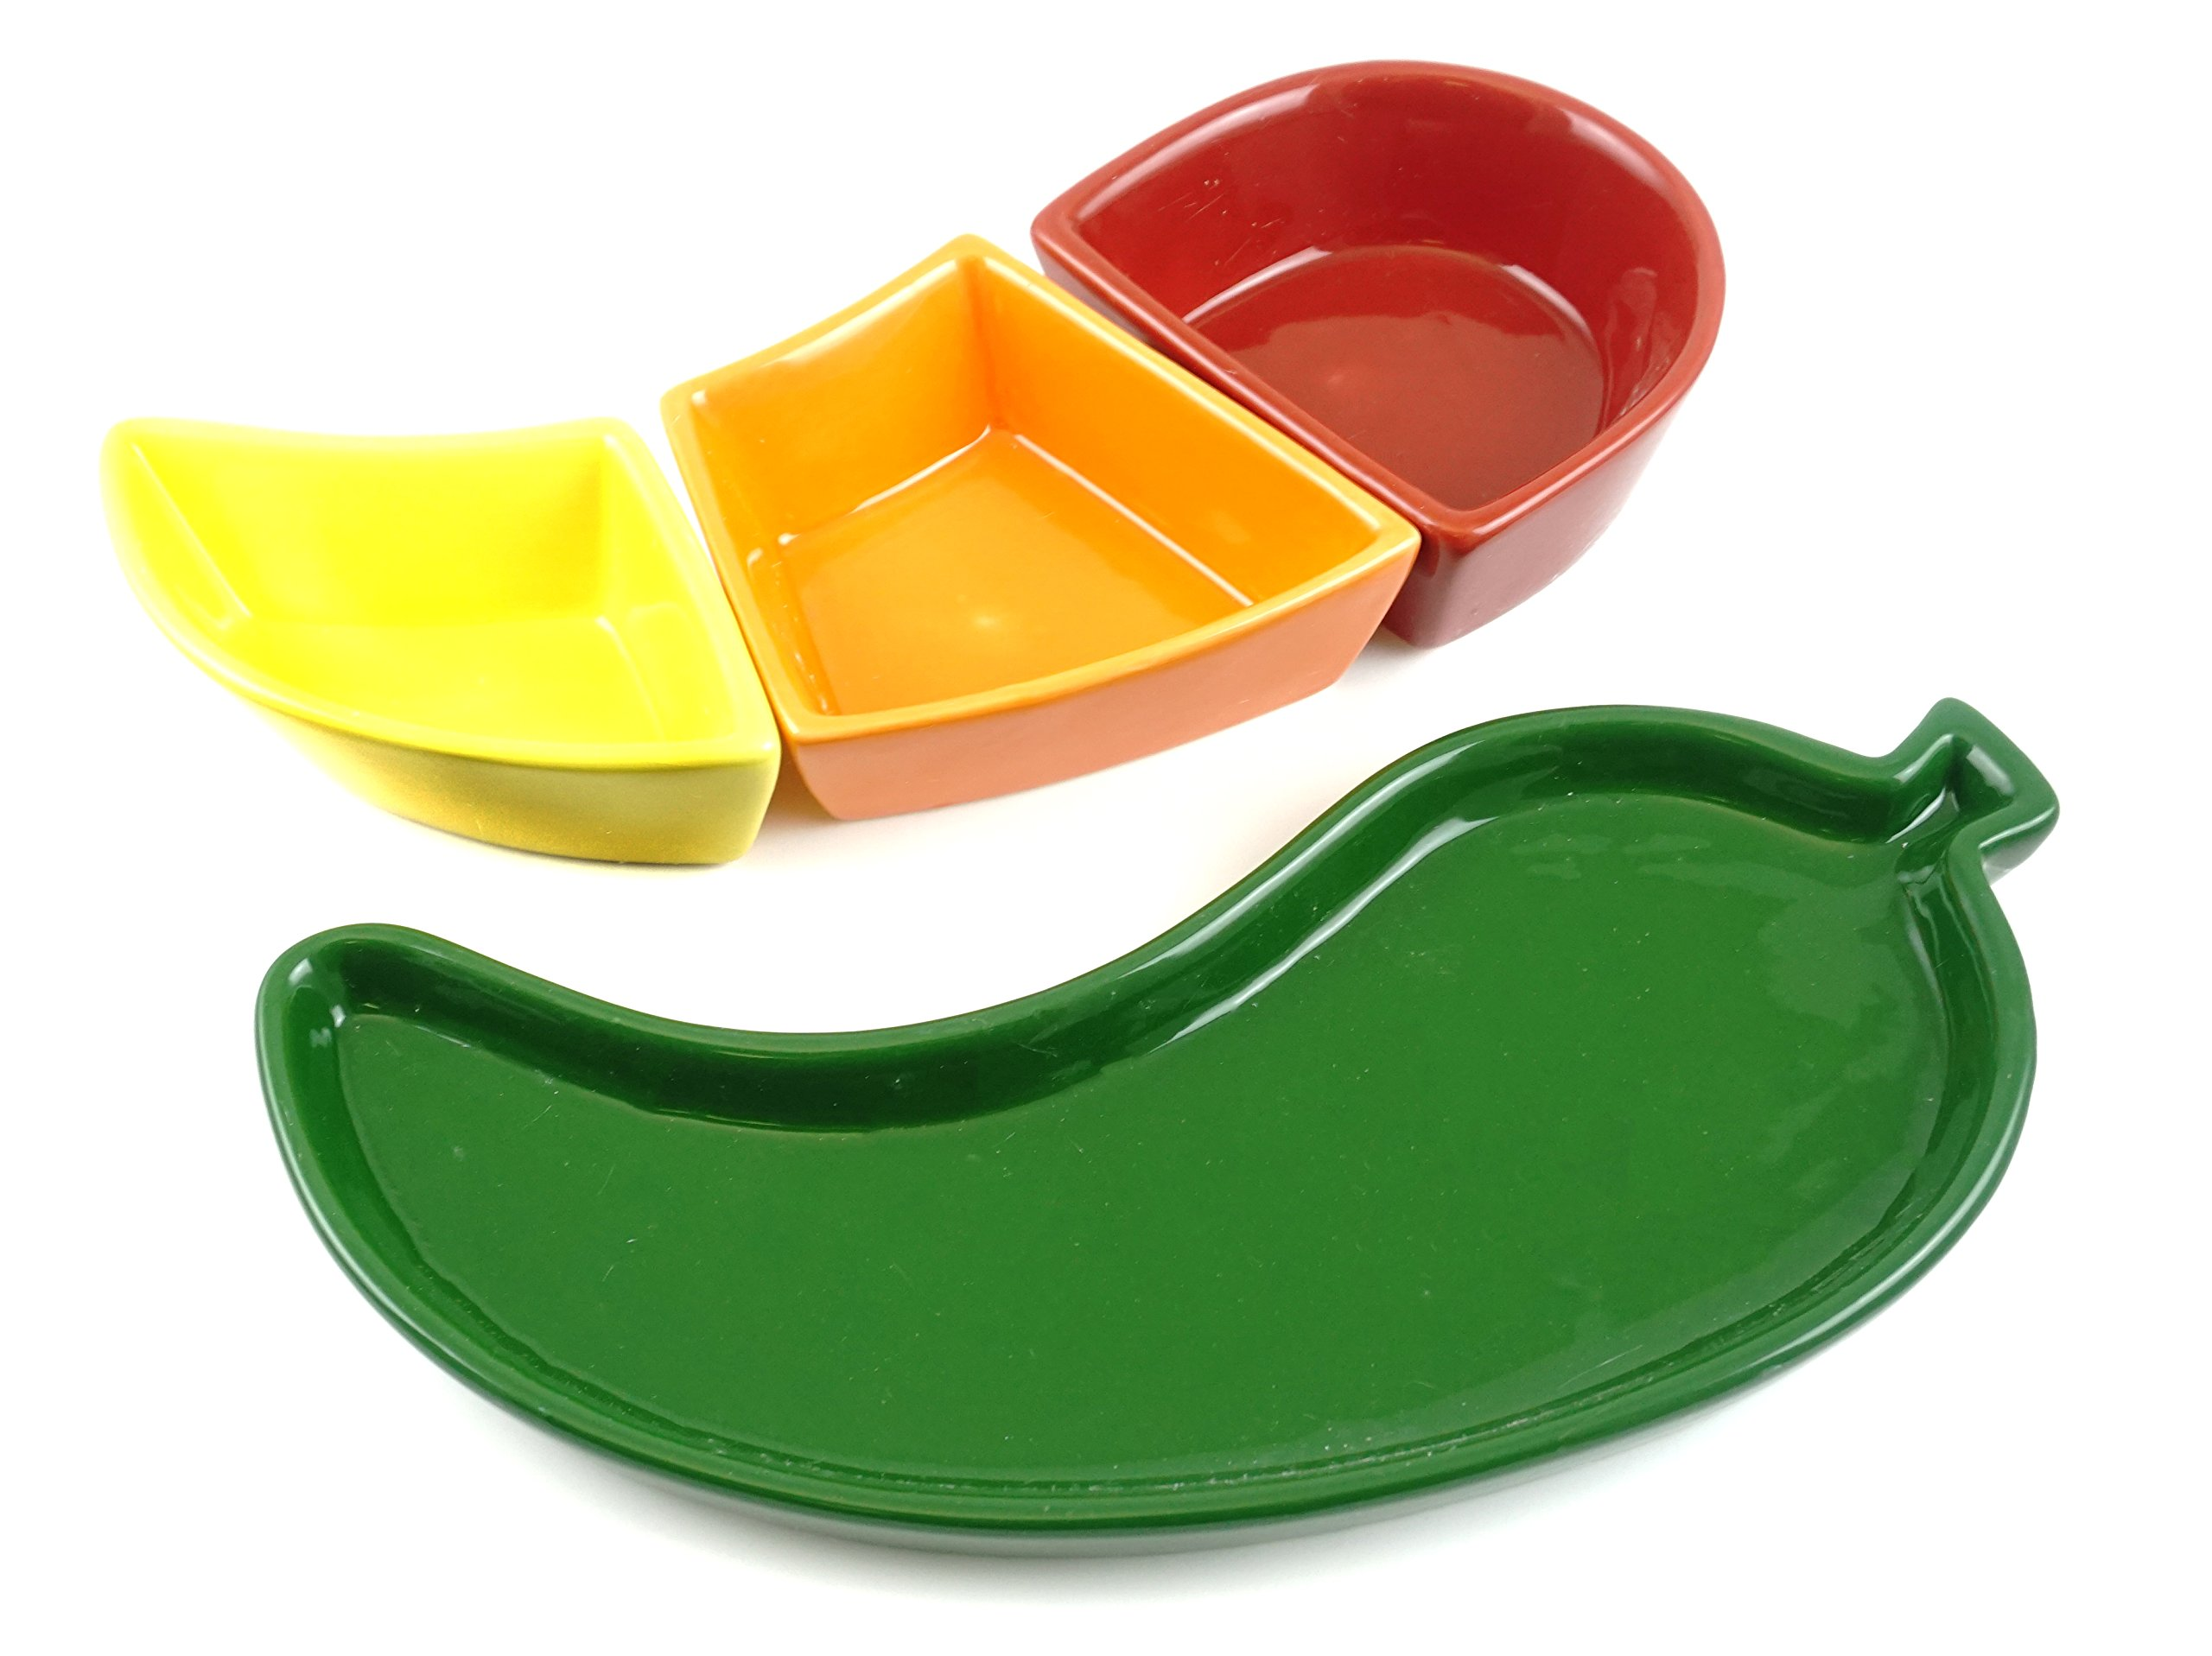 Fiesta Chili Pepper Tray with Stackable Dip Salsa Bowl Dish Set